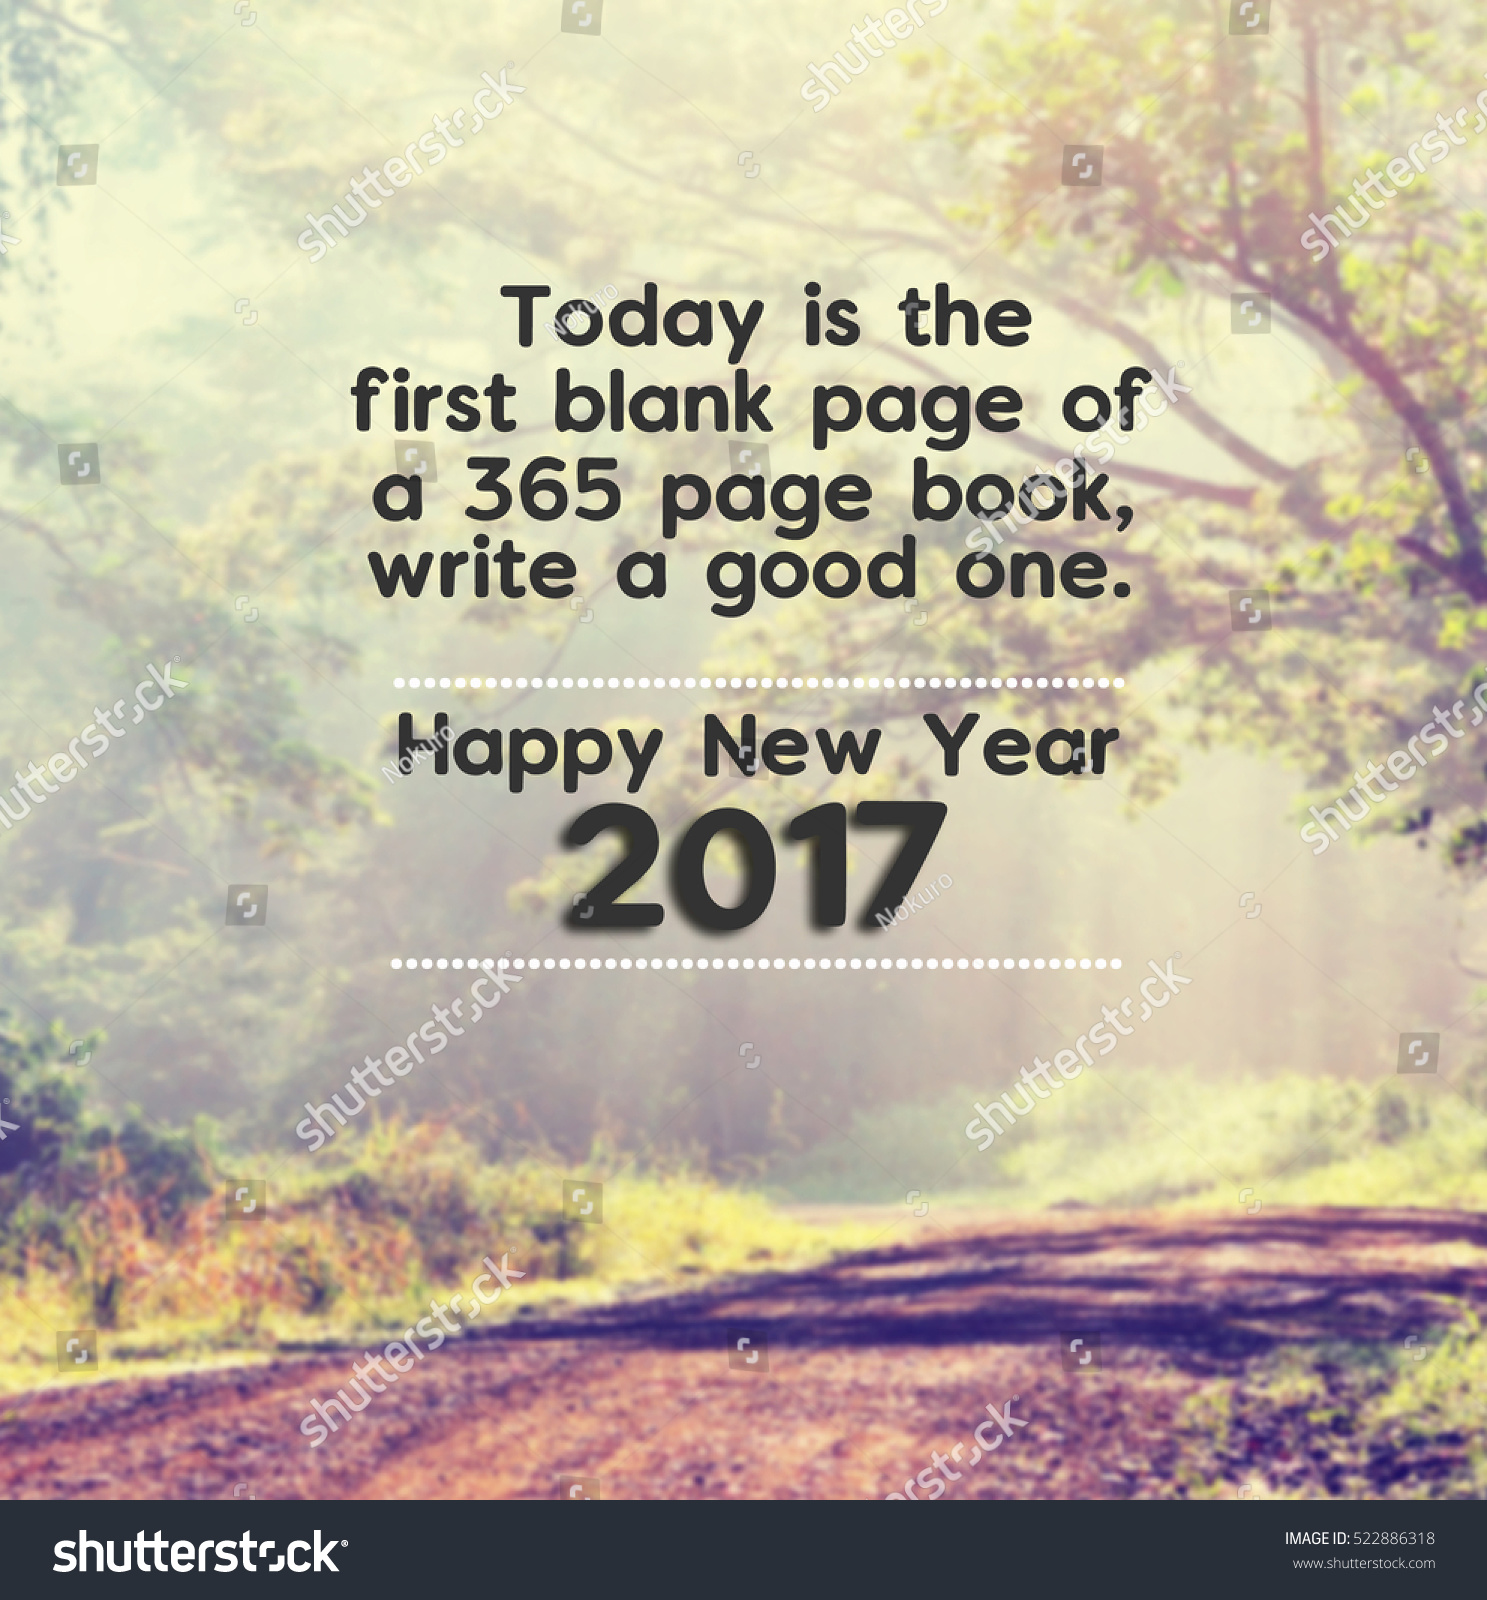 Inspirational New Year Quotes Happy New Year Inspirational Quotes Phrase Stock Photo 522886318